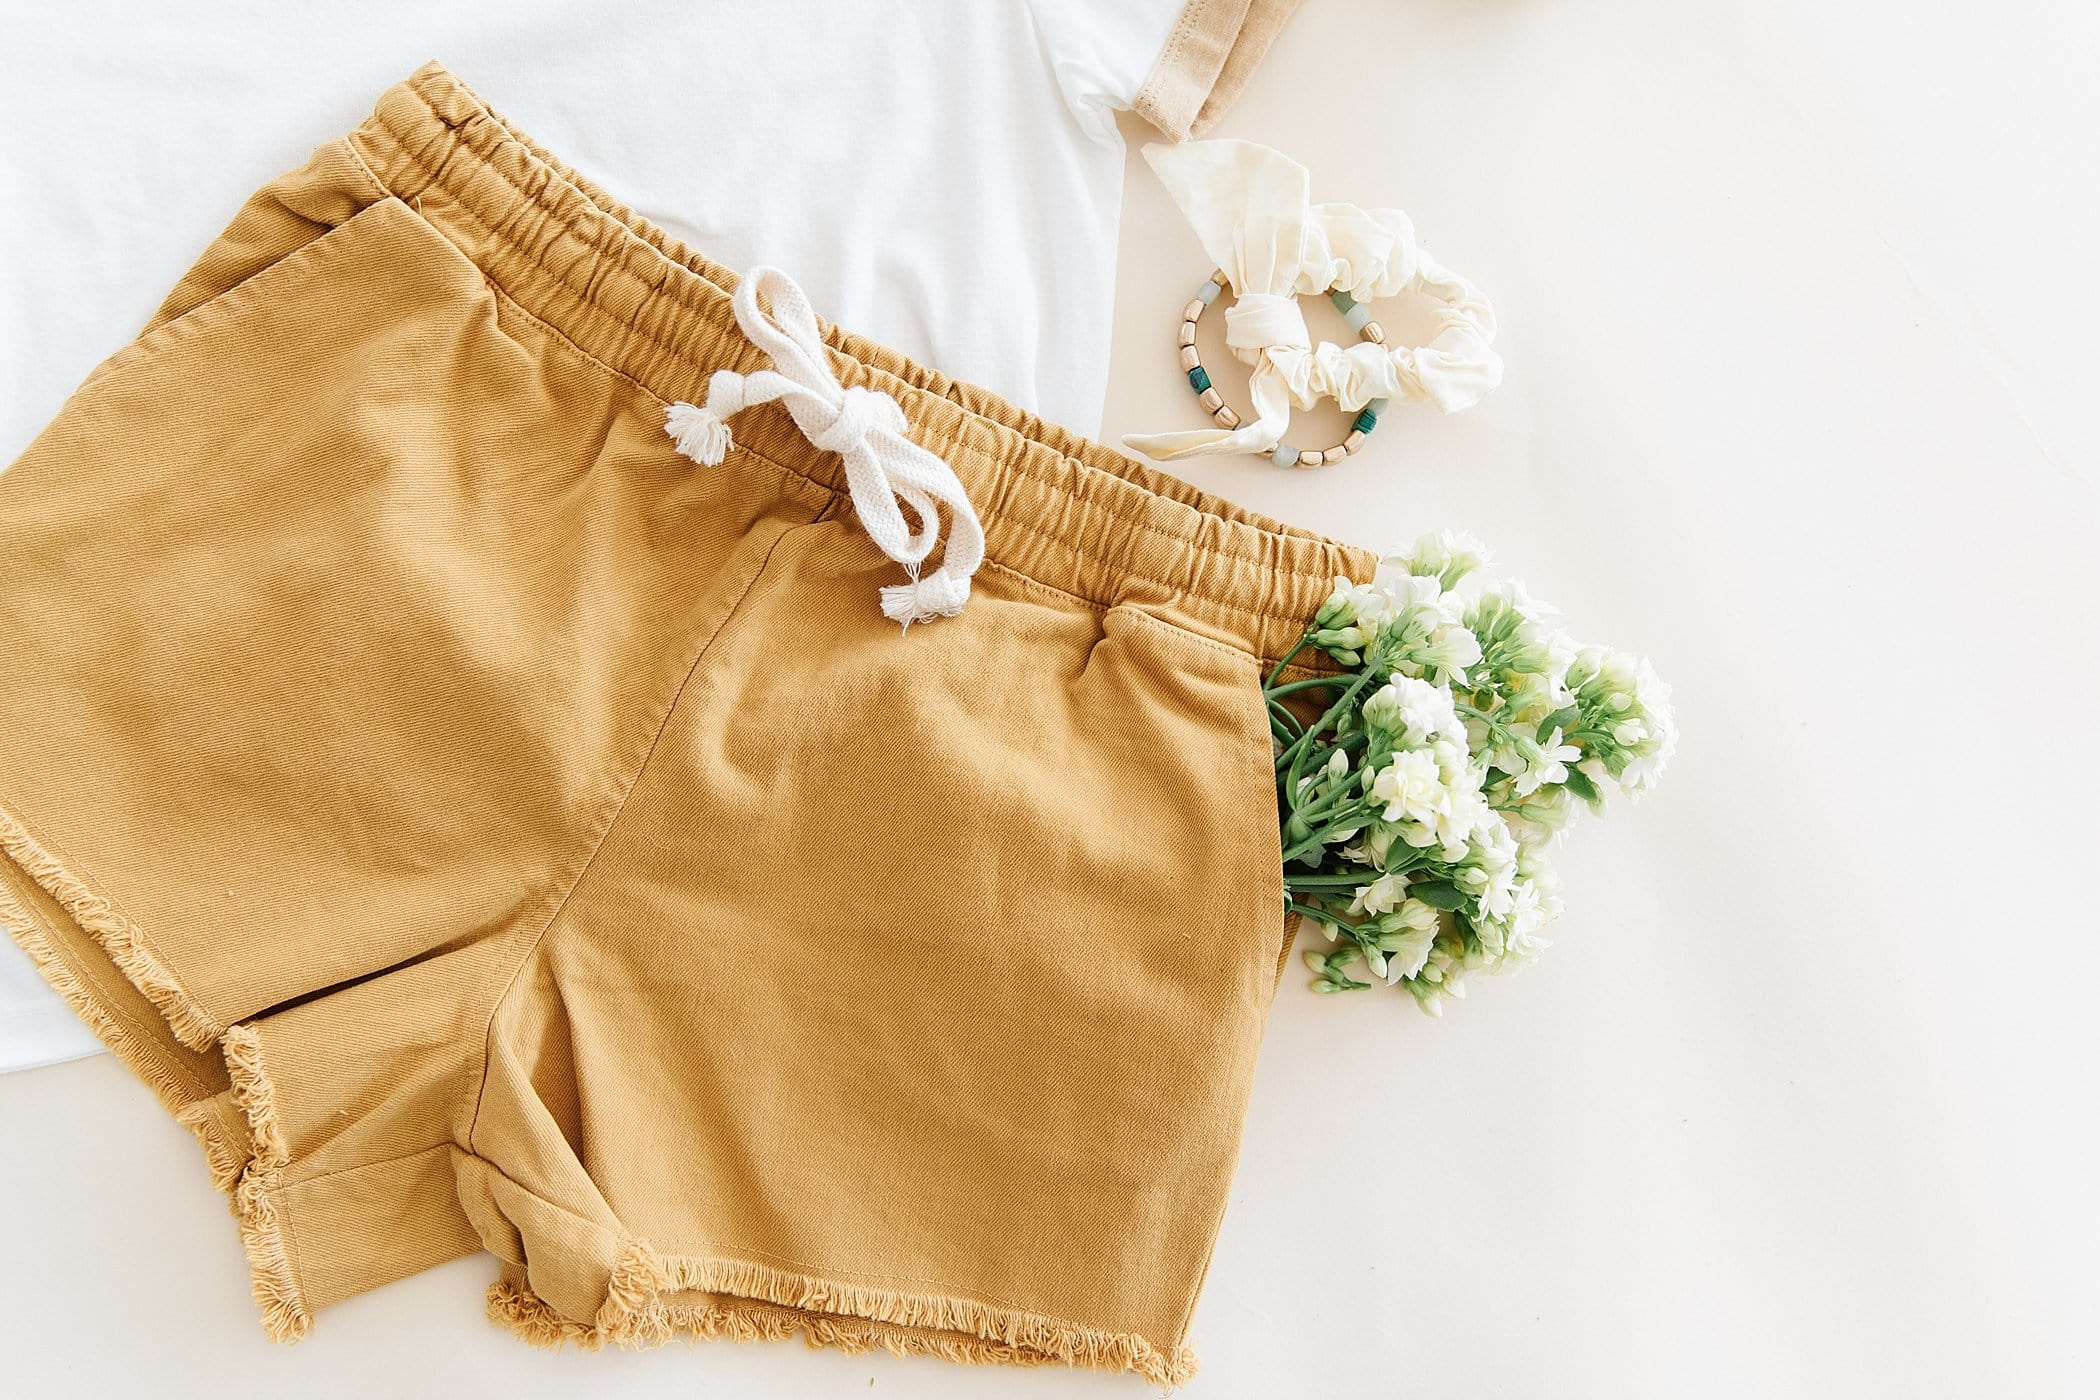 The Cooper Beach Shorts in Denim, Distressed Black, Mustard and Navy